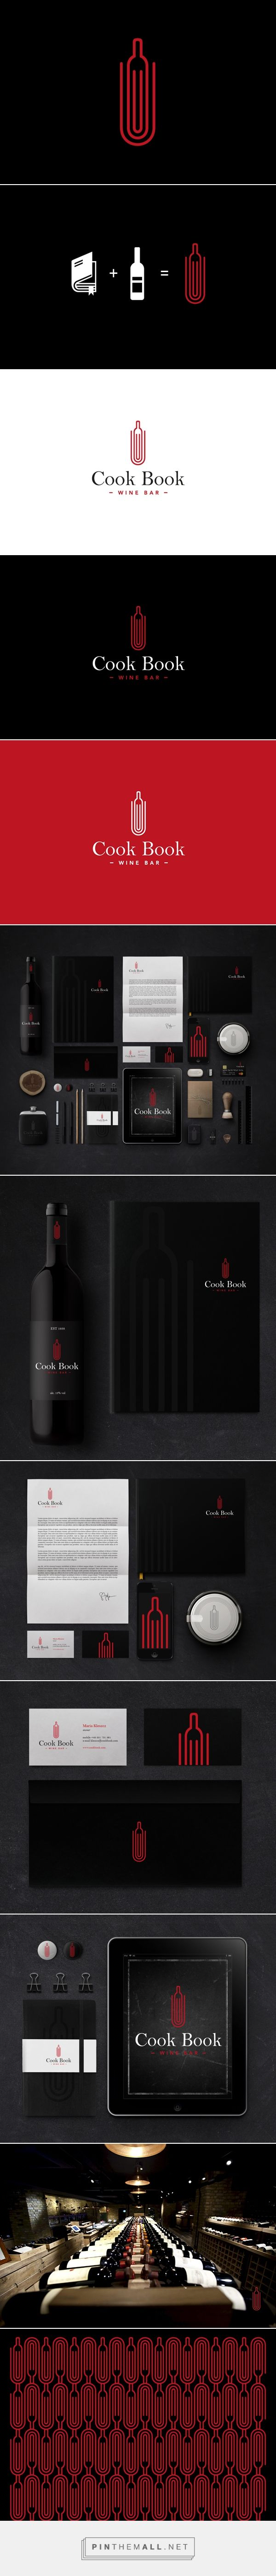 Cook Book Wine Bar on #Behance by Sebastian Bednarek curated by Packaging Diva PD eat, drink and read all in one place created via https://www.behance.net/gallery/15912405/Cook-Book-Wine-Bar